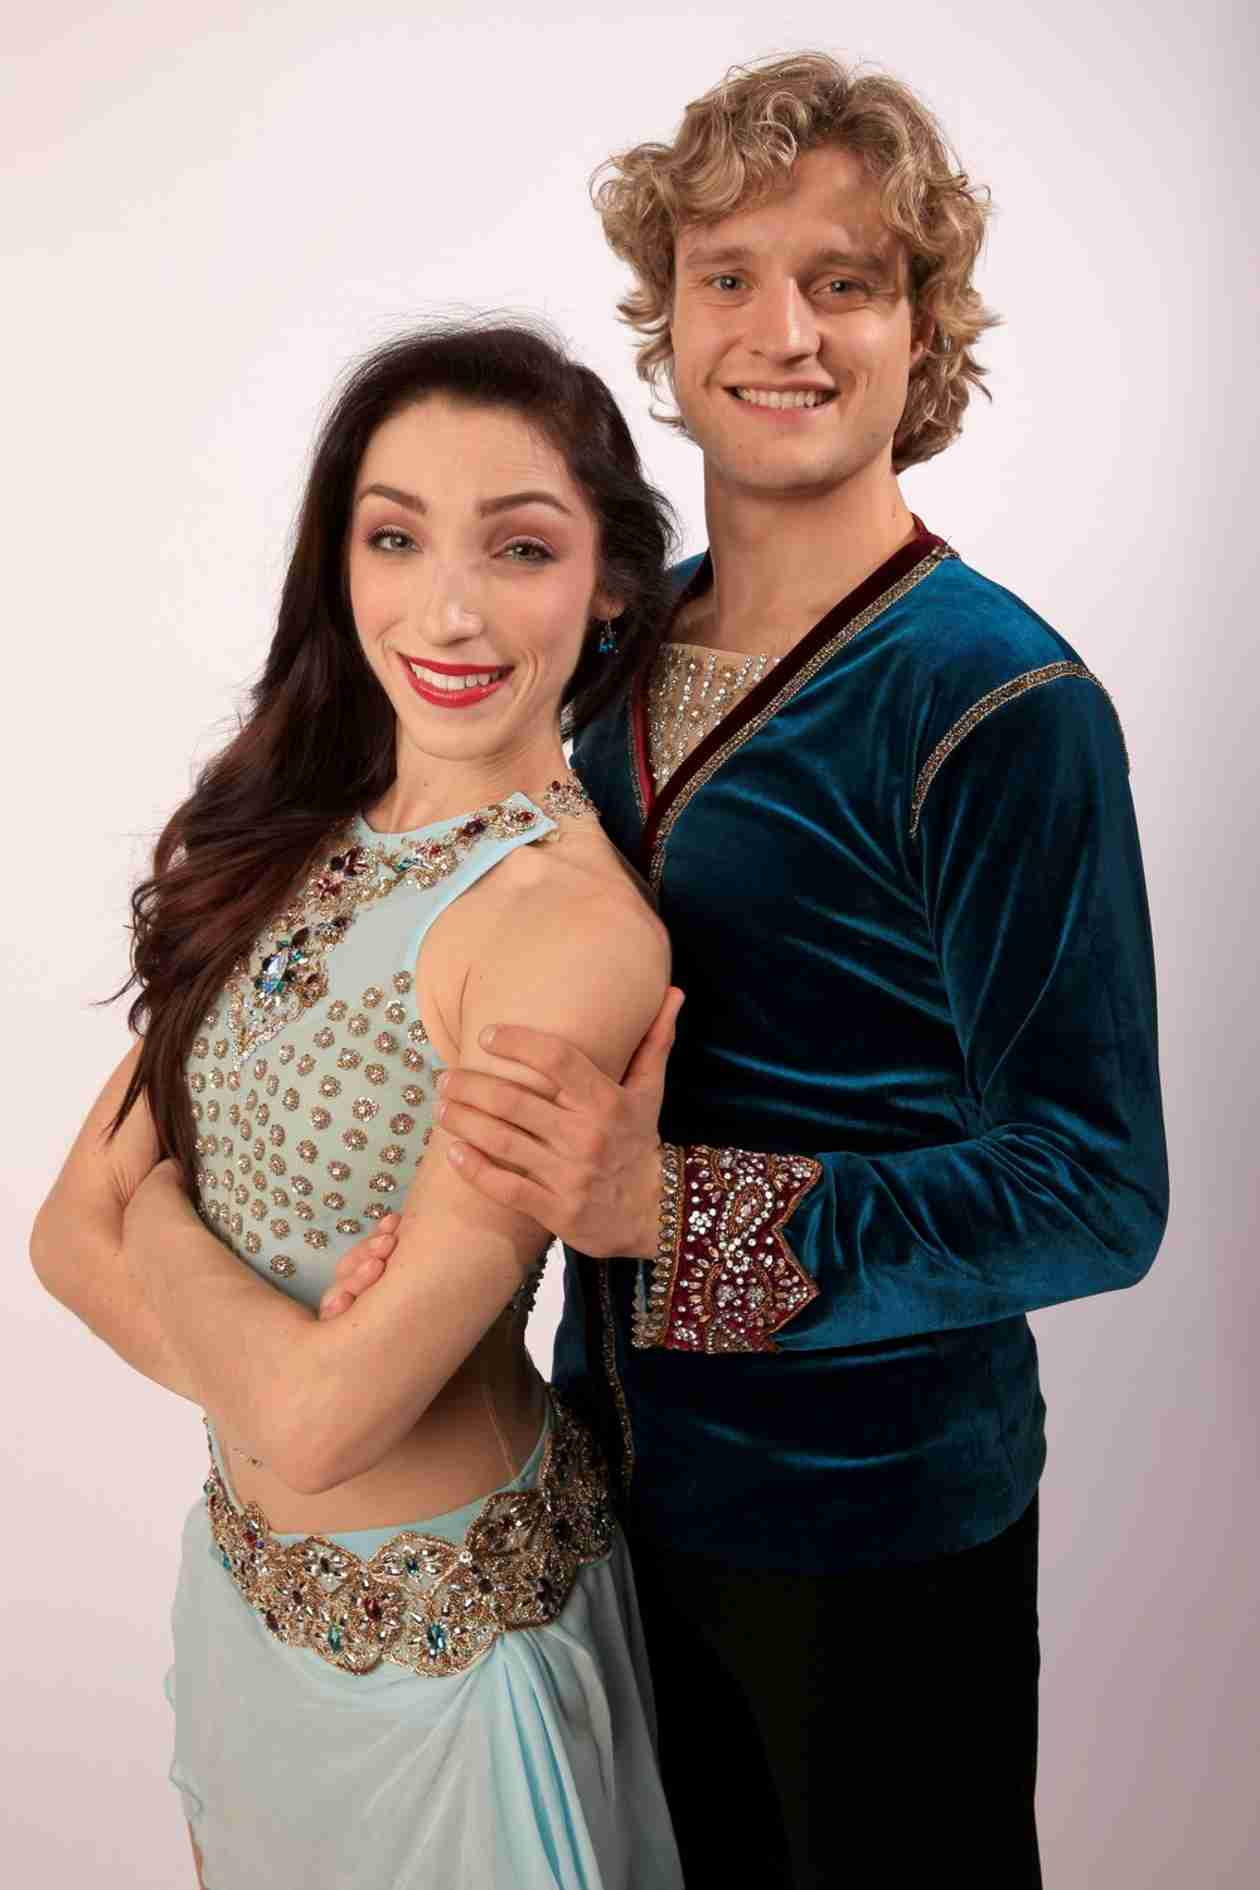 Dancing With the Stars 2014 Finale: Meryl Davis and Charlie White Dance Together (VIDEO)